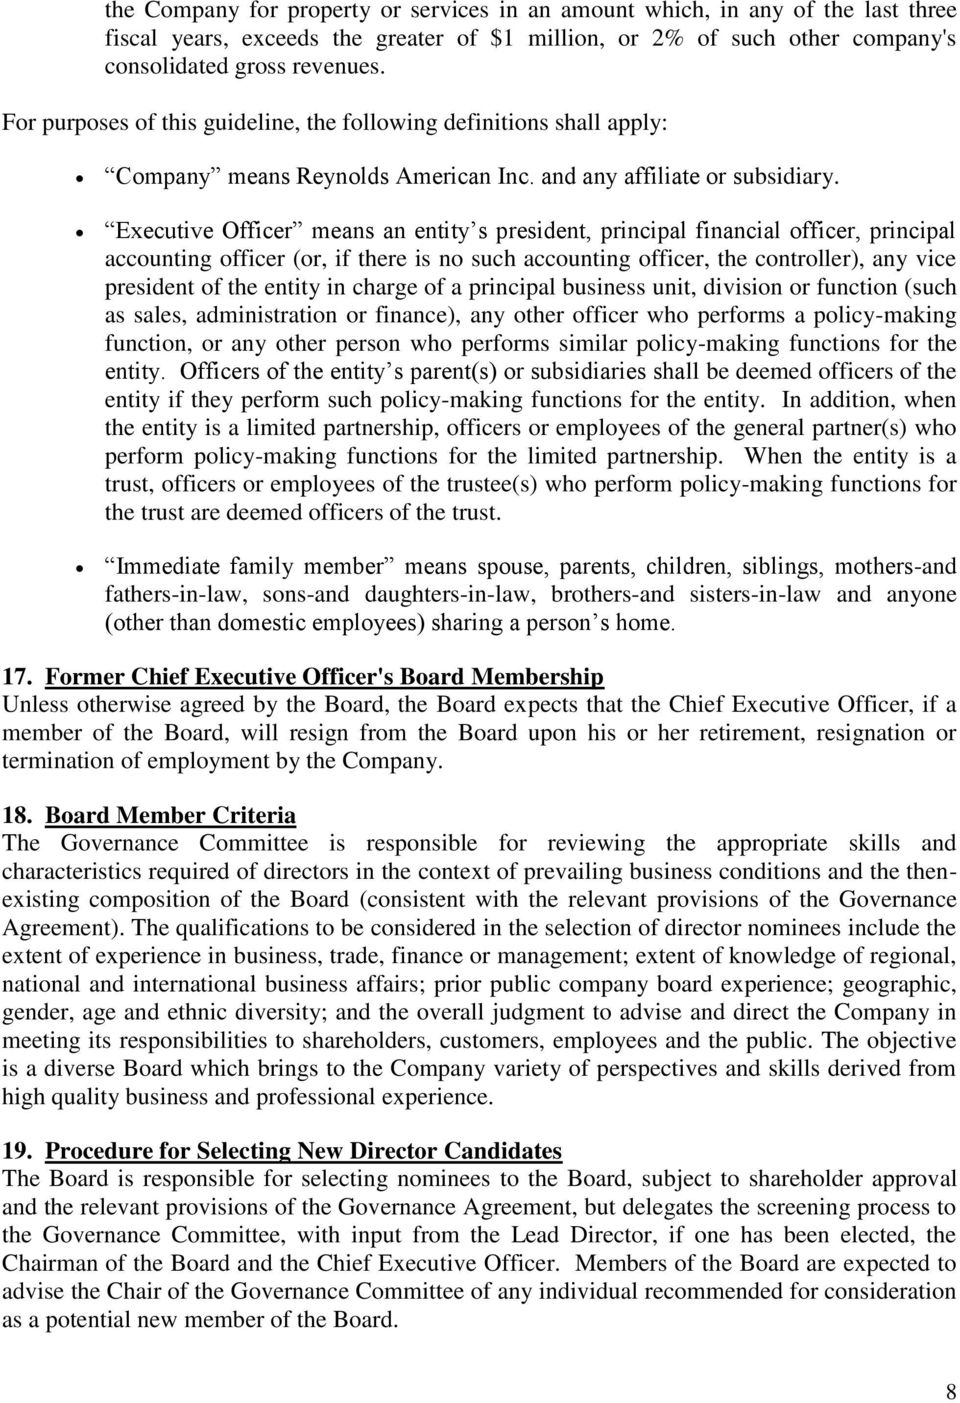 Executive Officer means an entity s president, principal financial officer, principal accounting officer (or, if there is no such accounting officer, the controller), any vice president of the entity